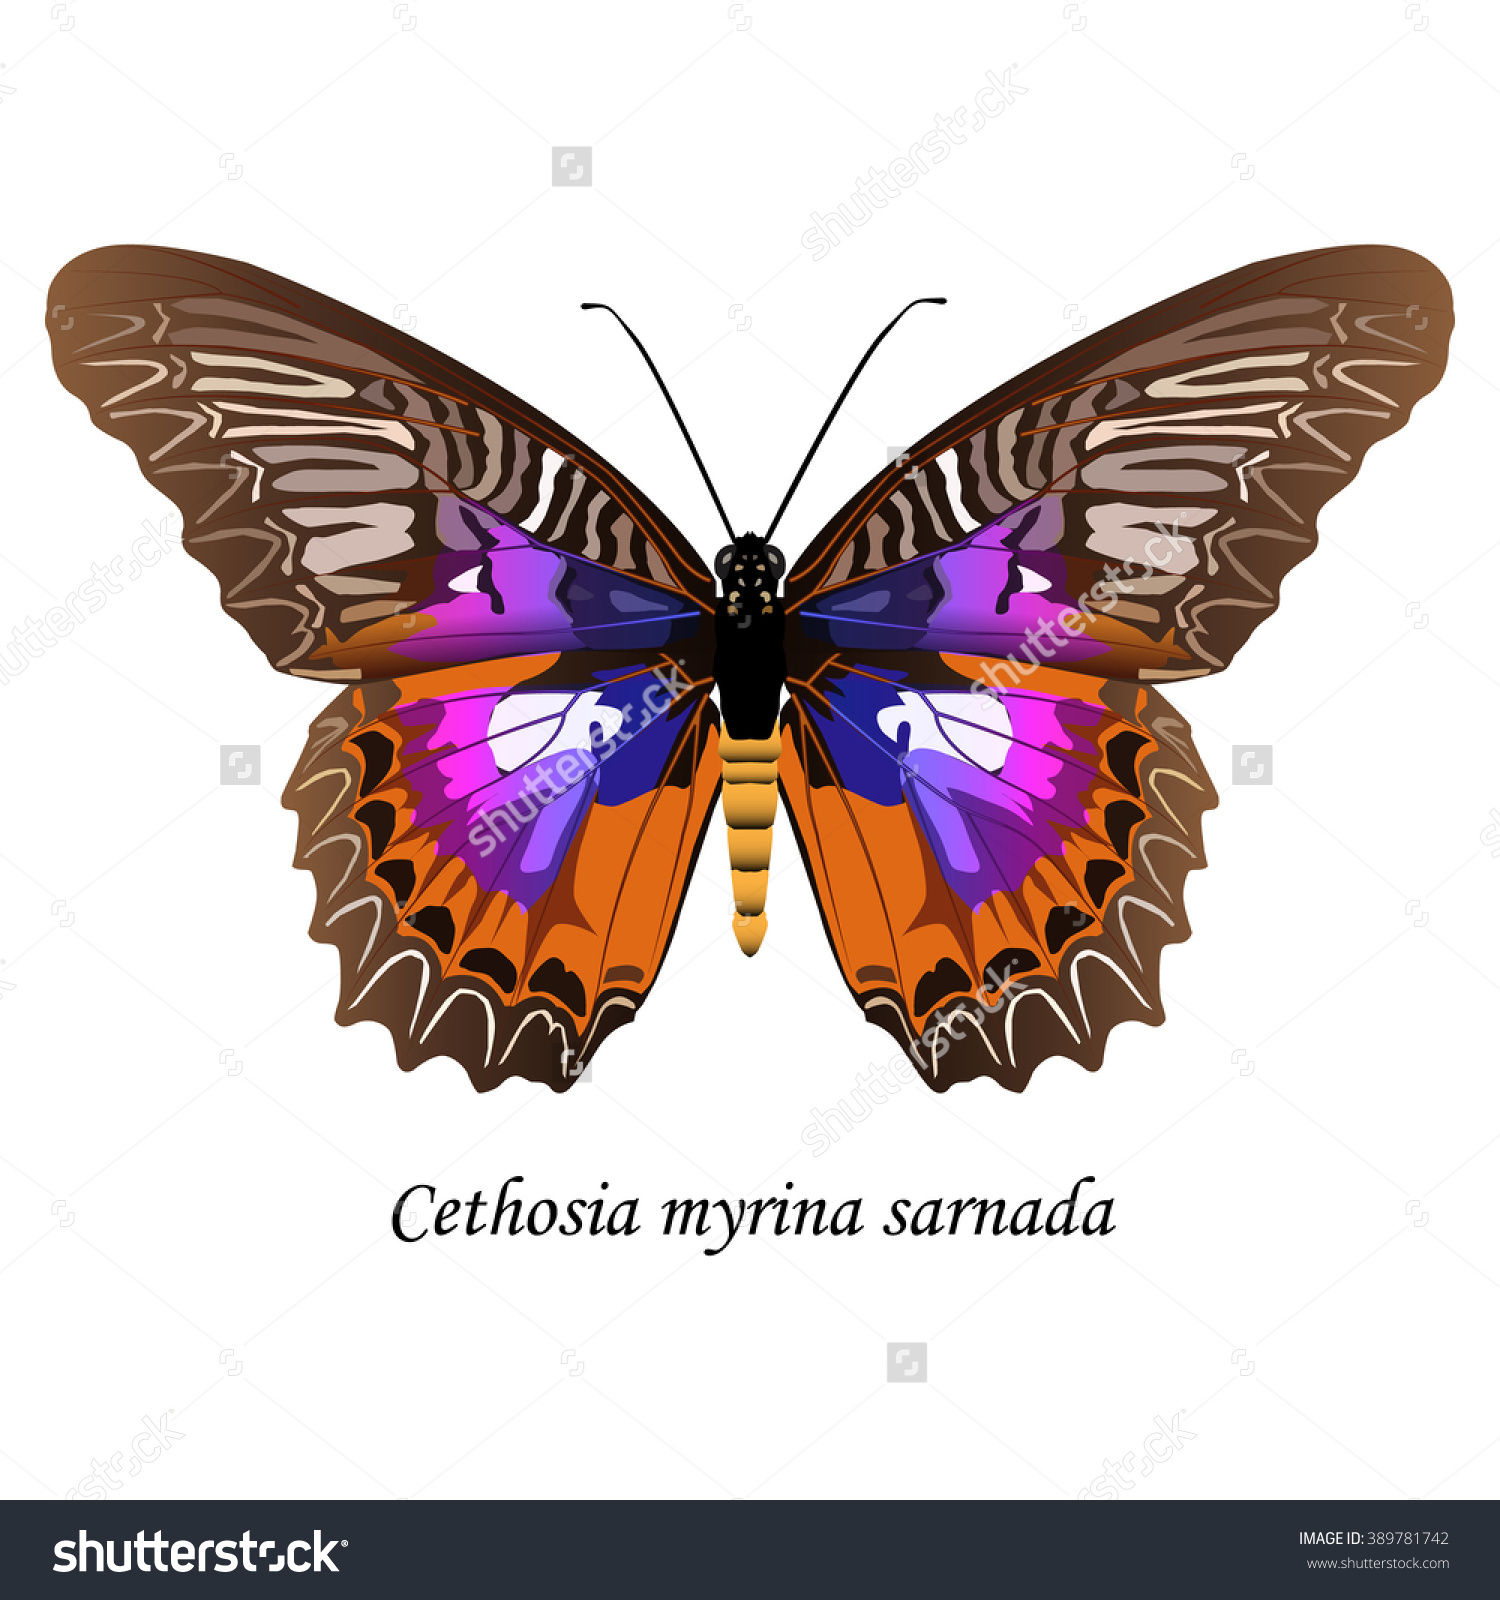 Illustration Sulawesi Butterfly Nymphalidae Family Cethosia Stock.